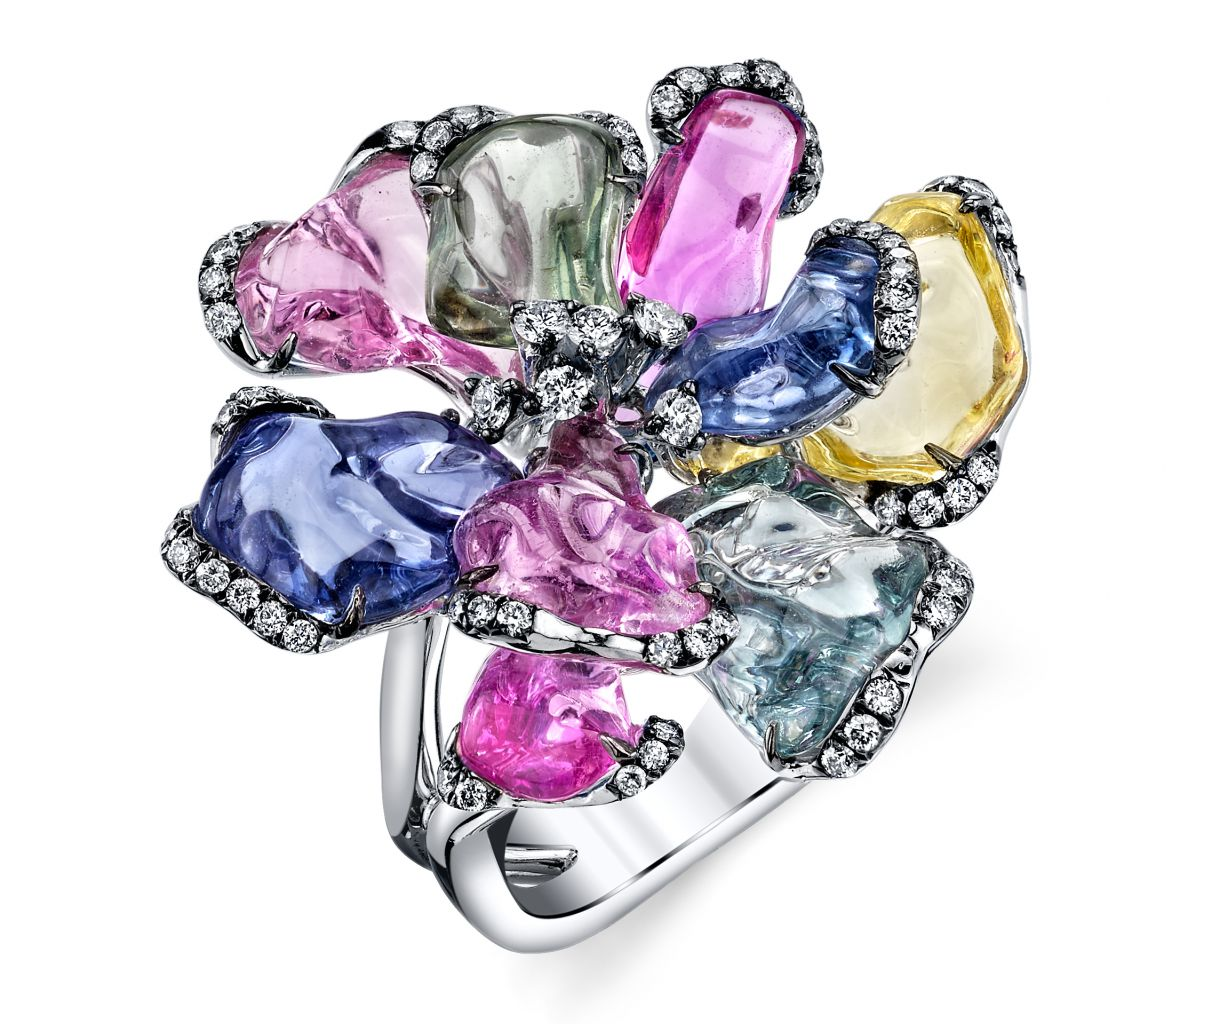 Parade Design tumbled sapphire bloom ring